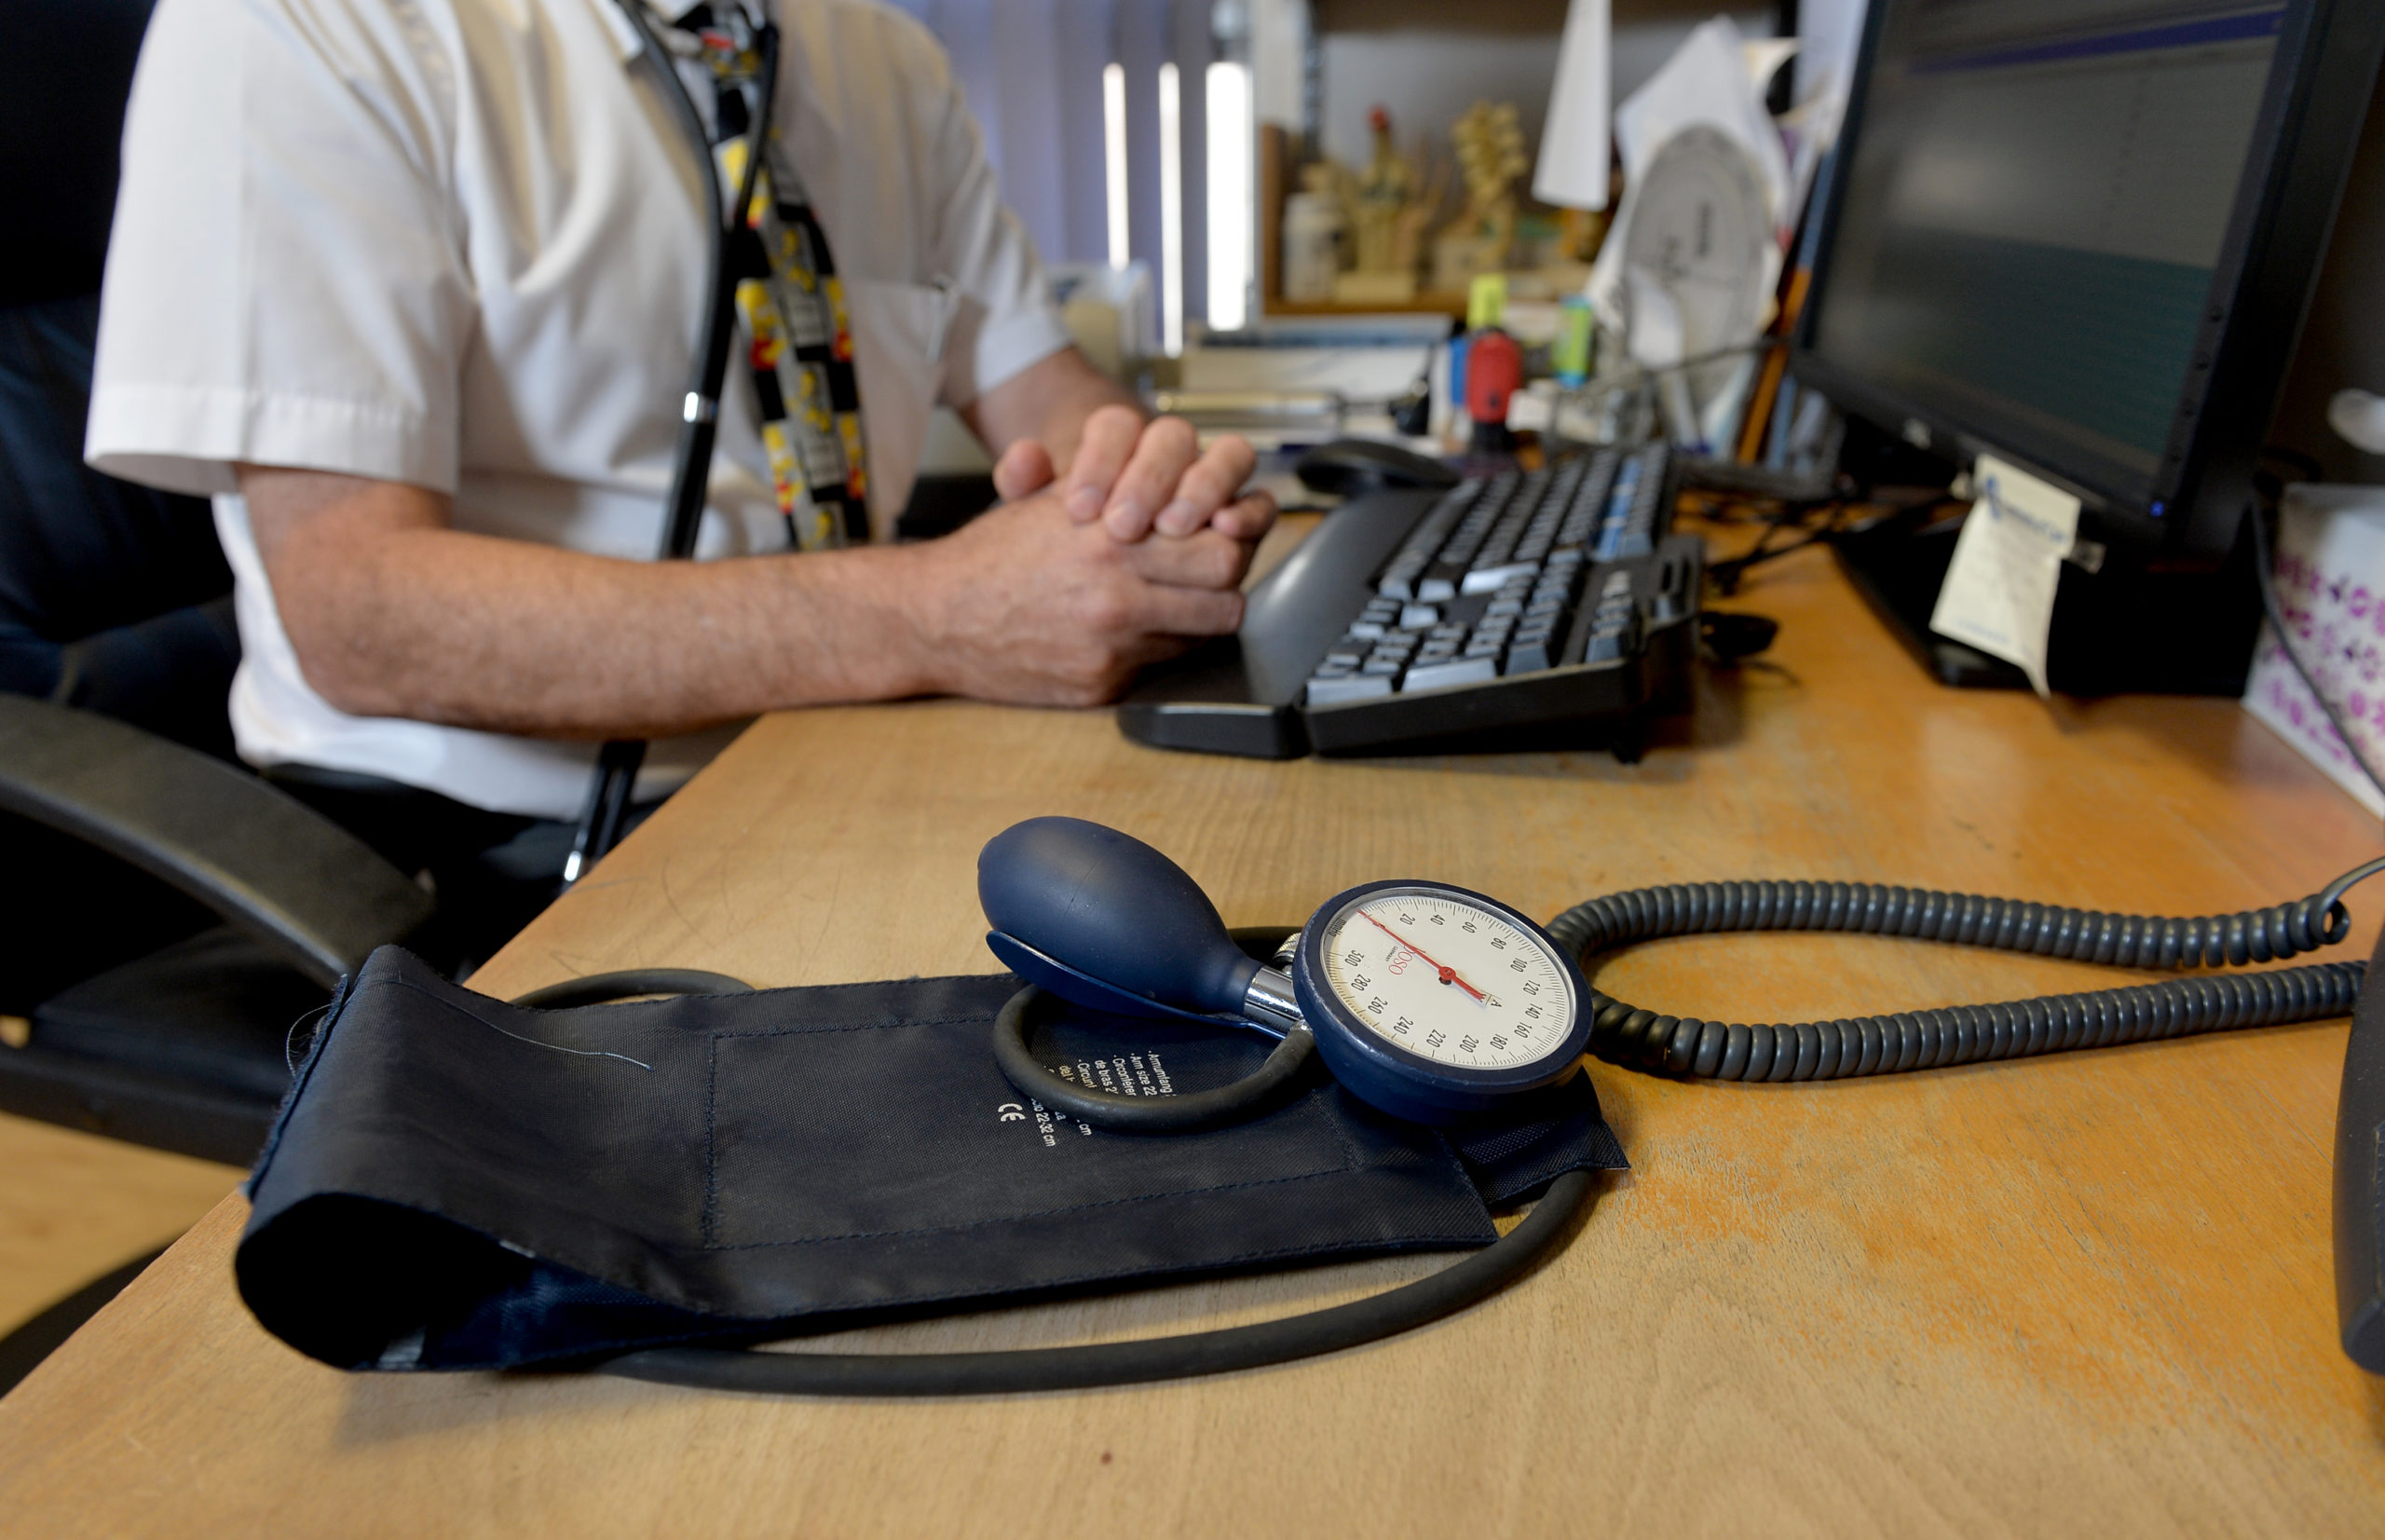 The majority of GP surgeries will be closed for a summer holiday on Monday, July 27